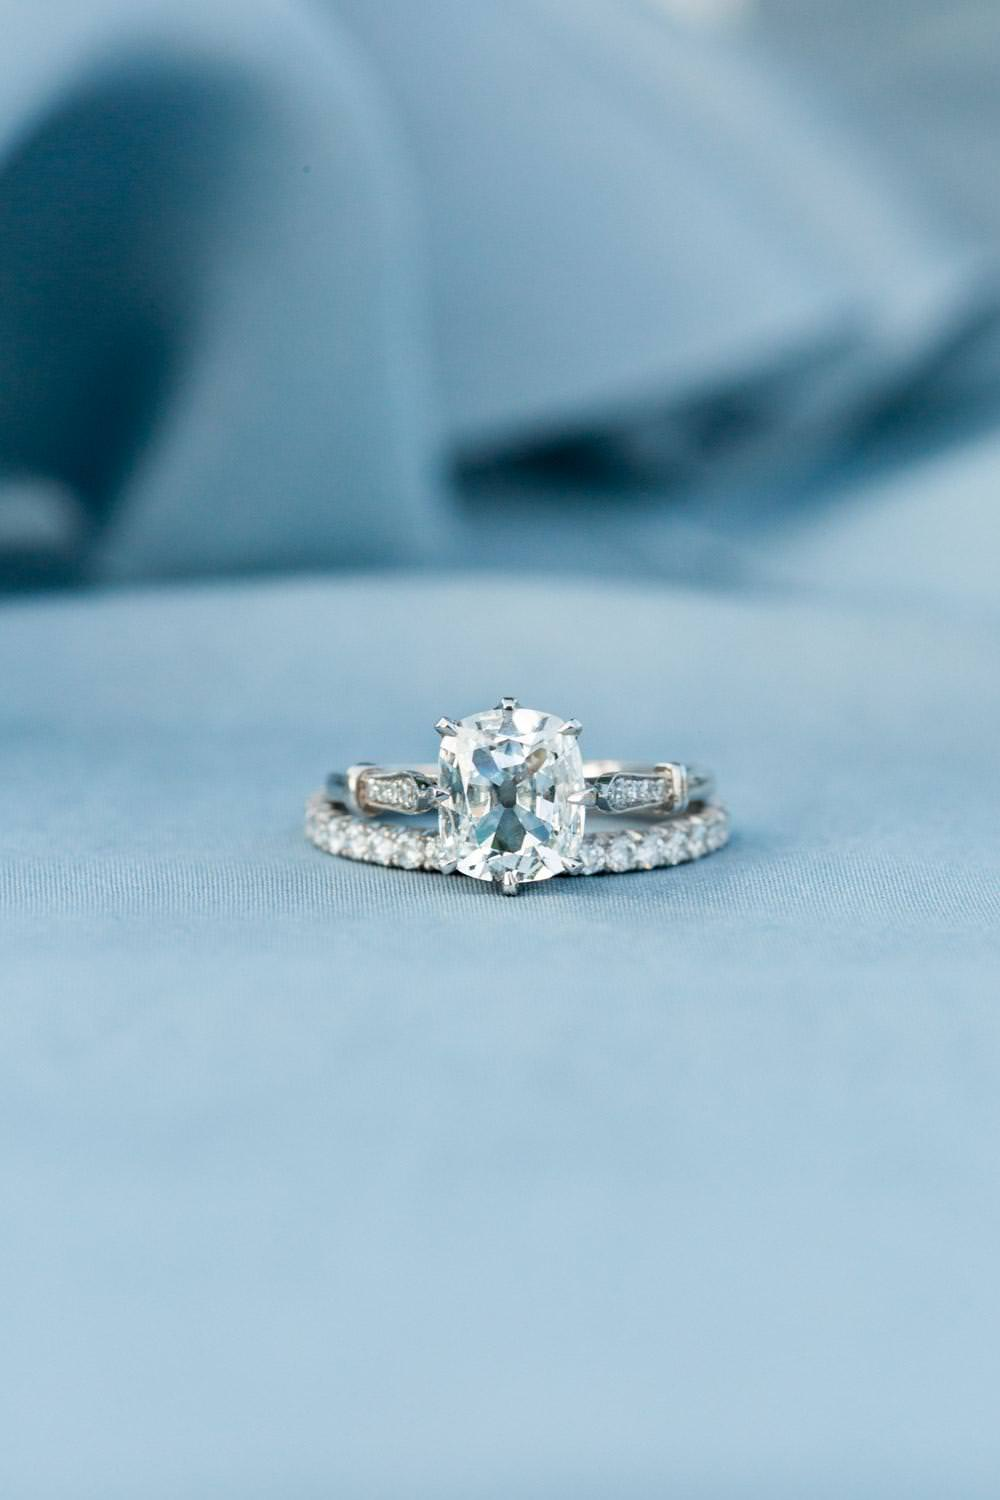 Rancho Valencia Wedding Photography by Cavin Elizabeth, large solitaire Trumpet and Horn diamond engagement ring